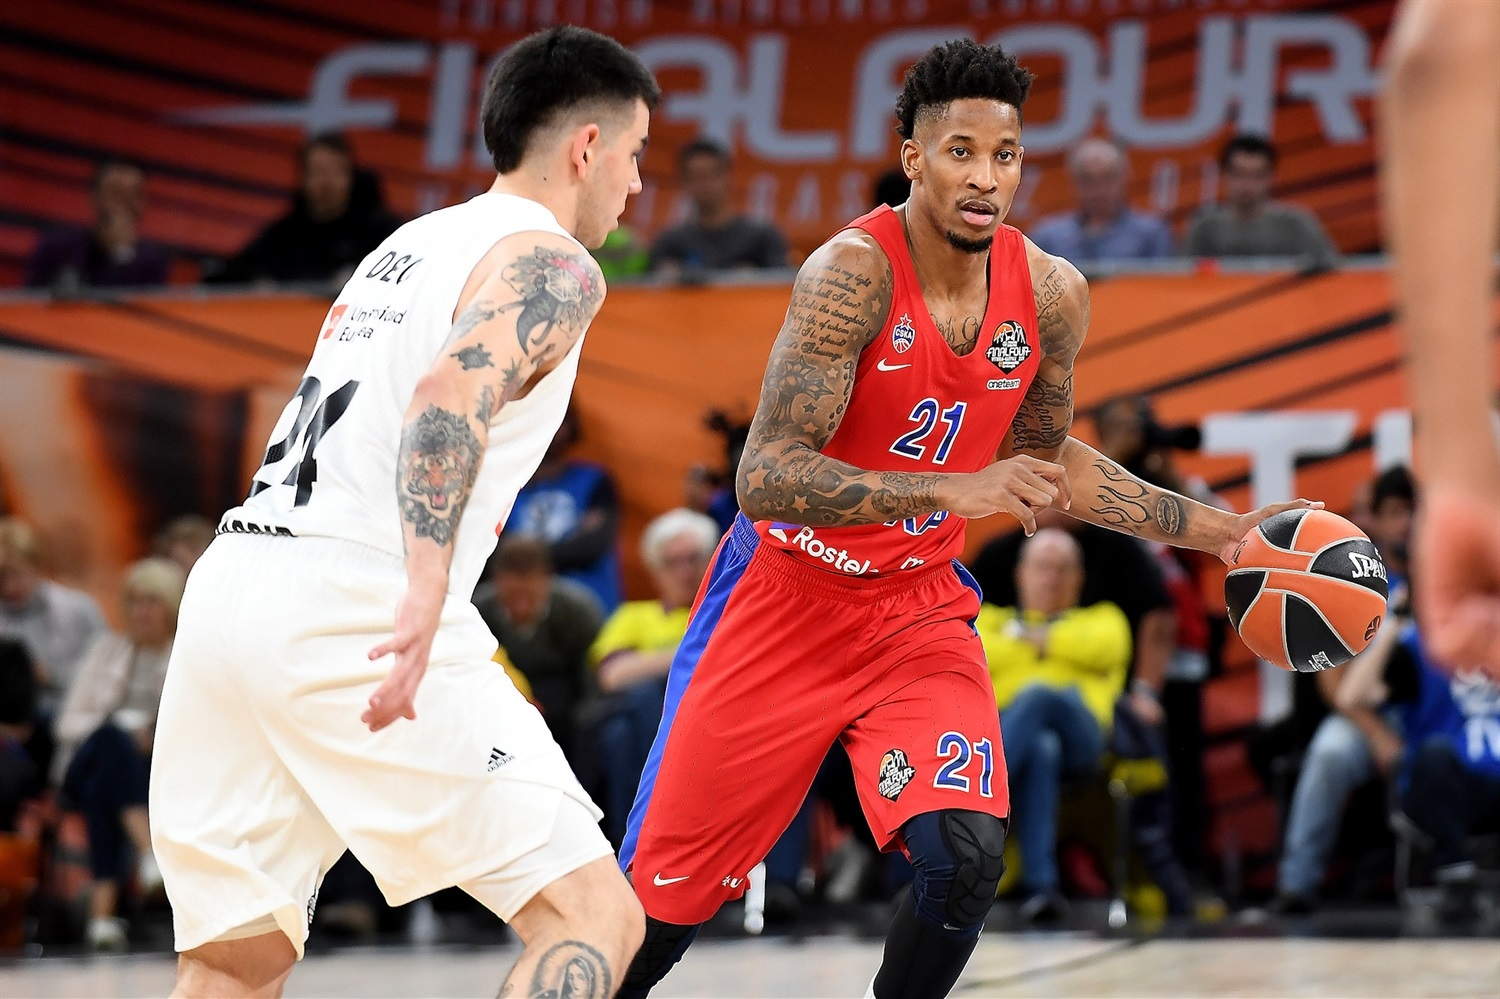 Will Clyburn  - CSKA Moscow - Final Four Vitoria-Gasteiz 2019 - EB18